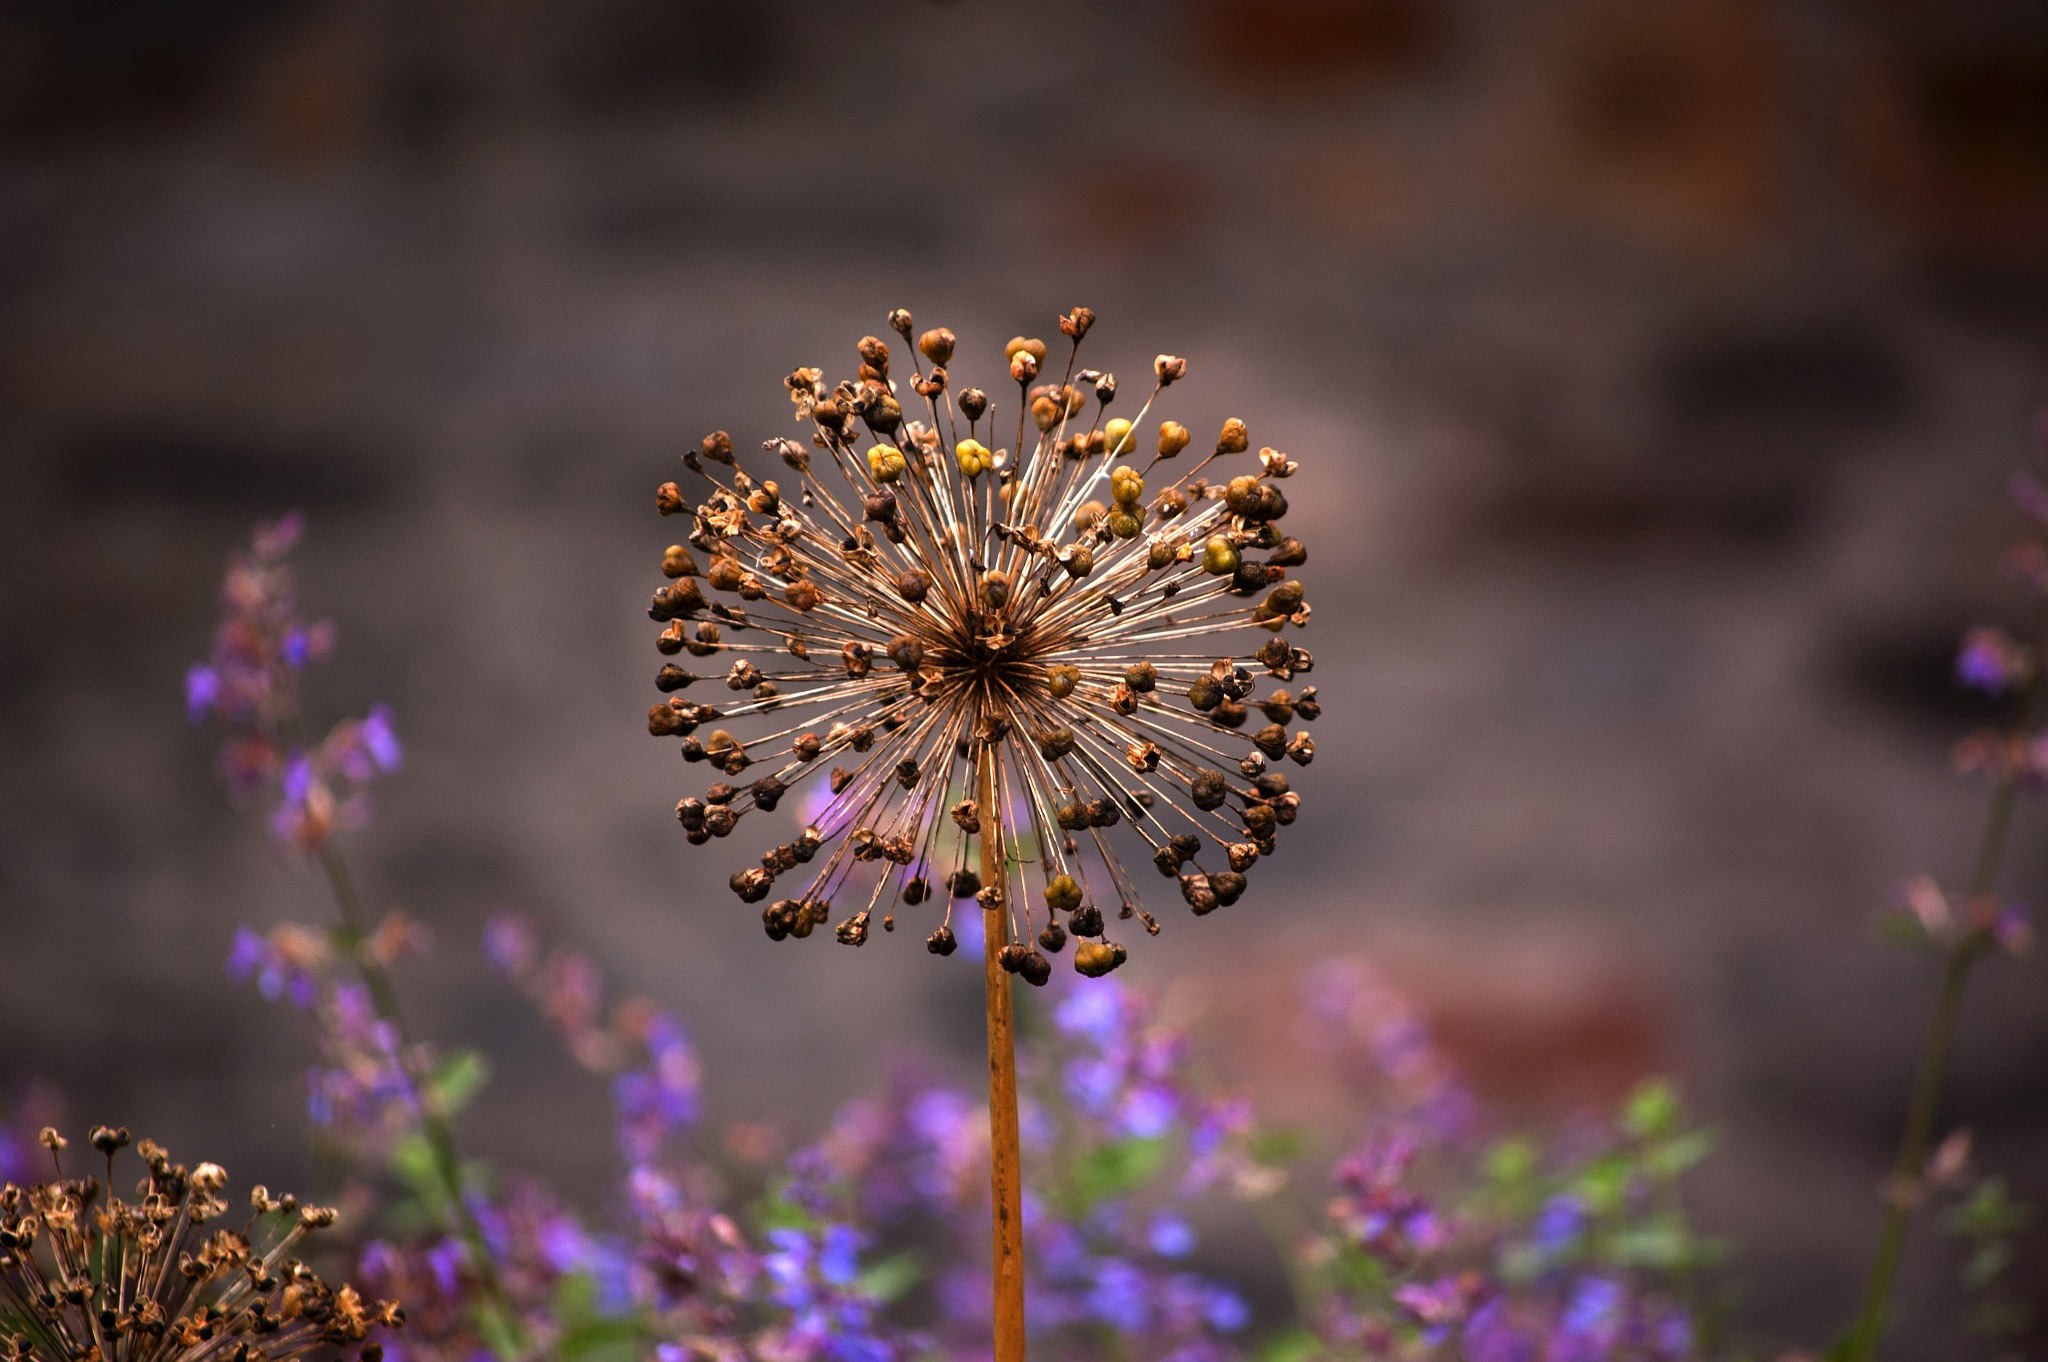 A seed head by edwinphillips